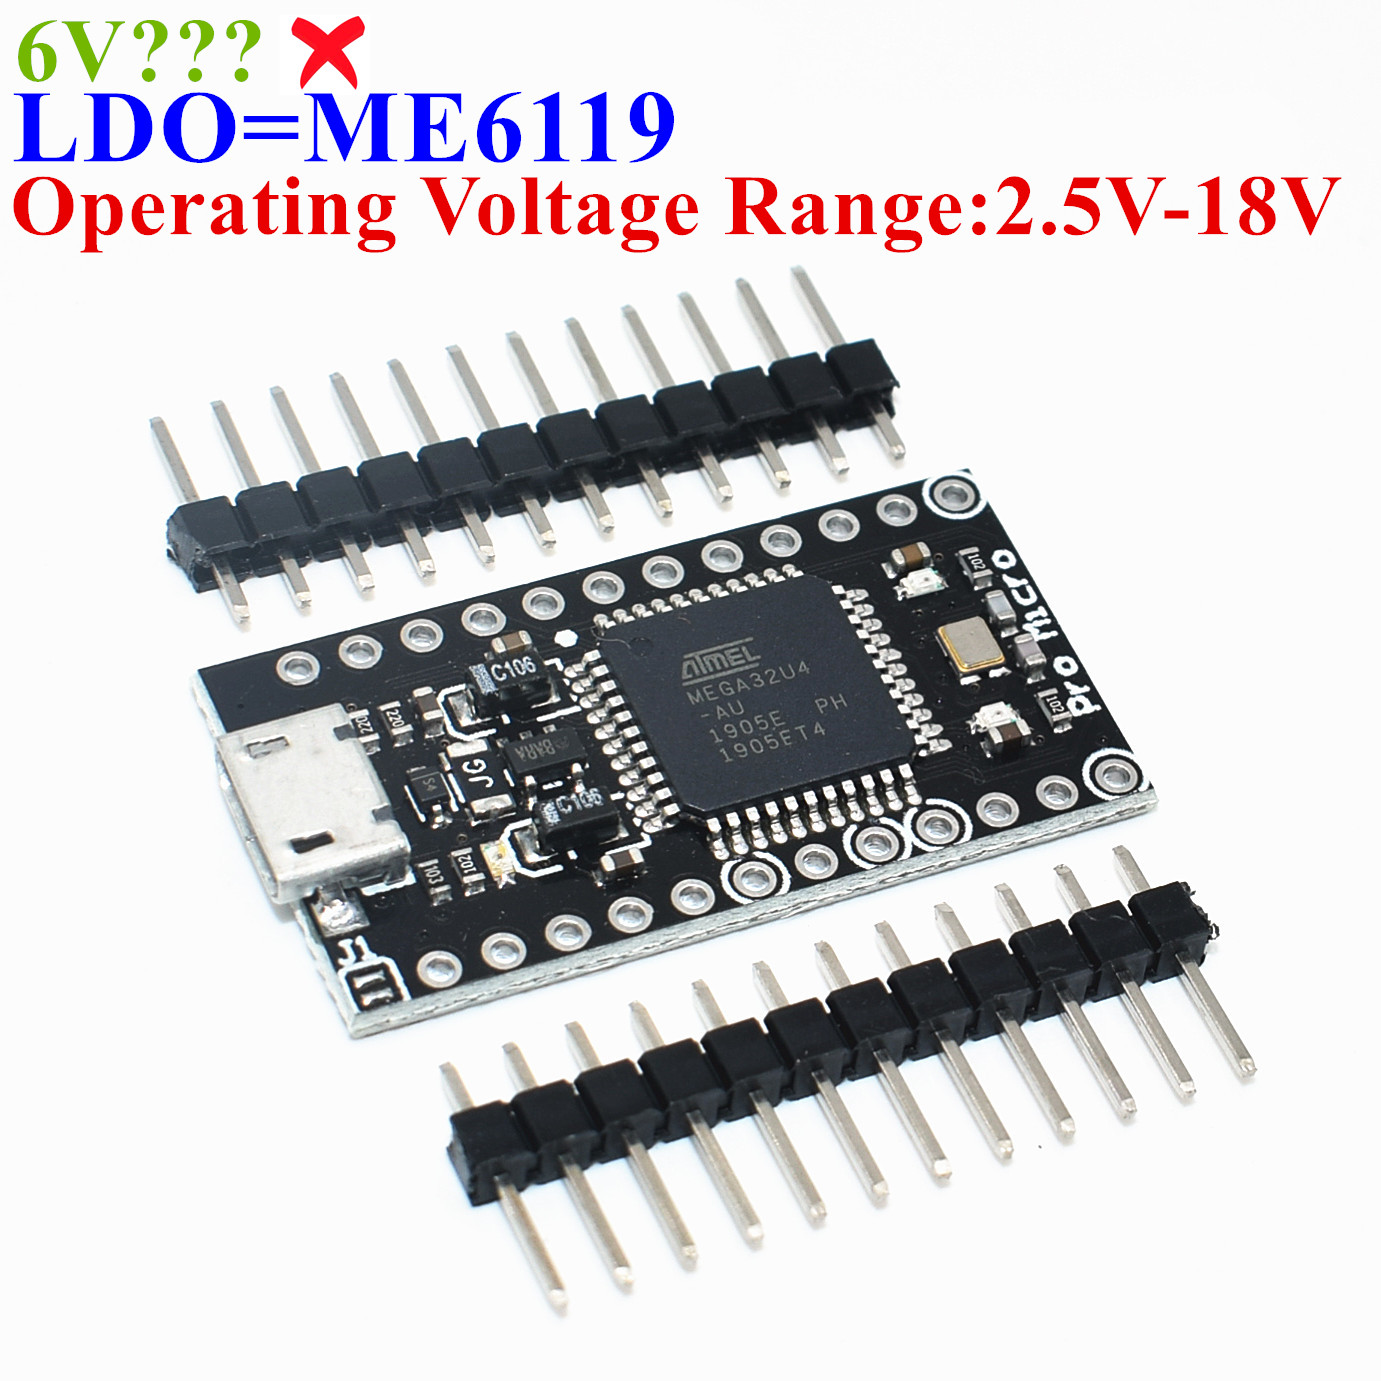 top 10 arduino pro micros list and get free shipping - c9b0bhci